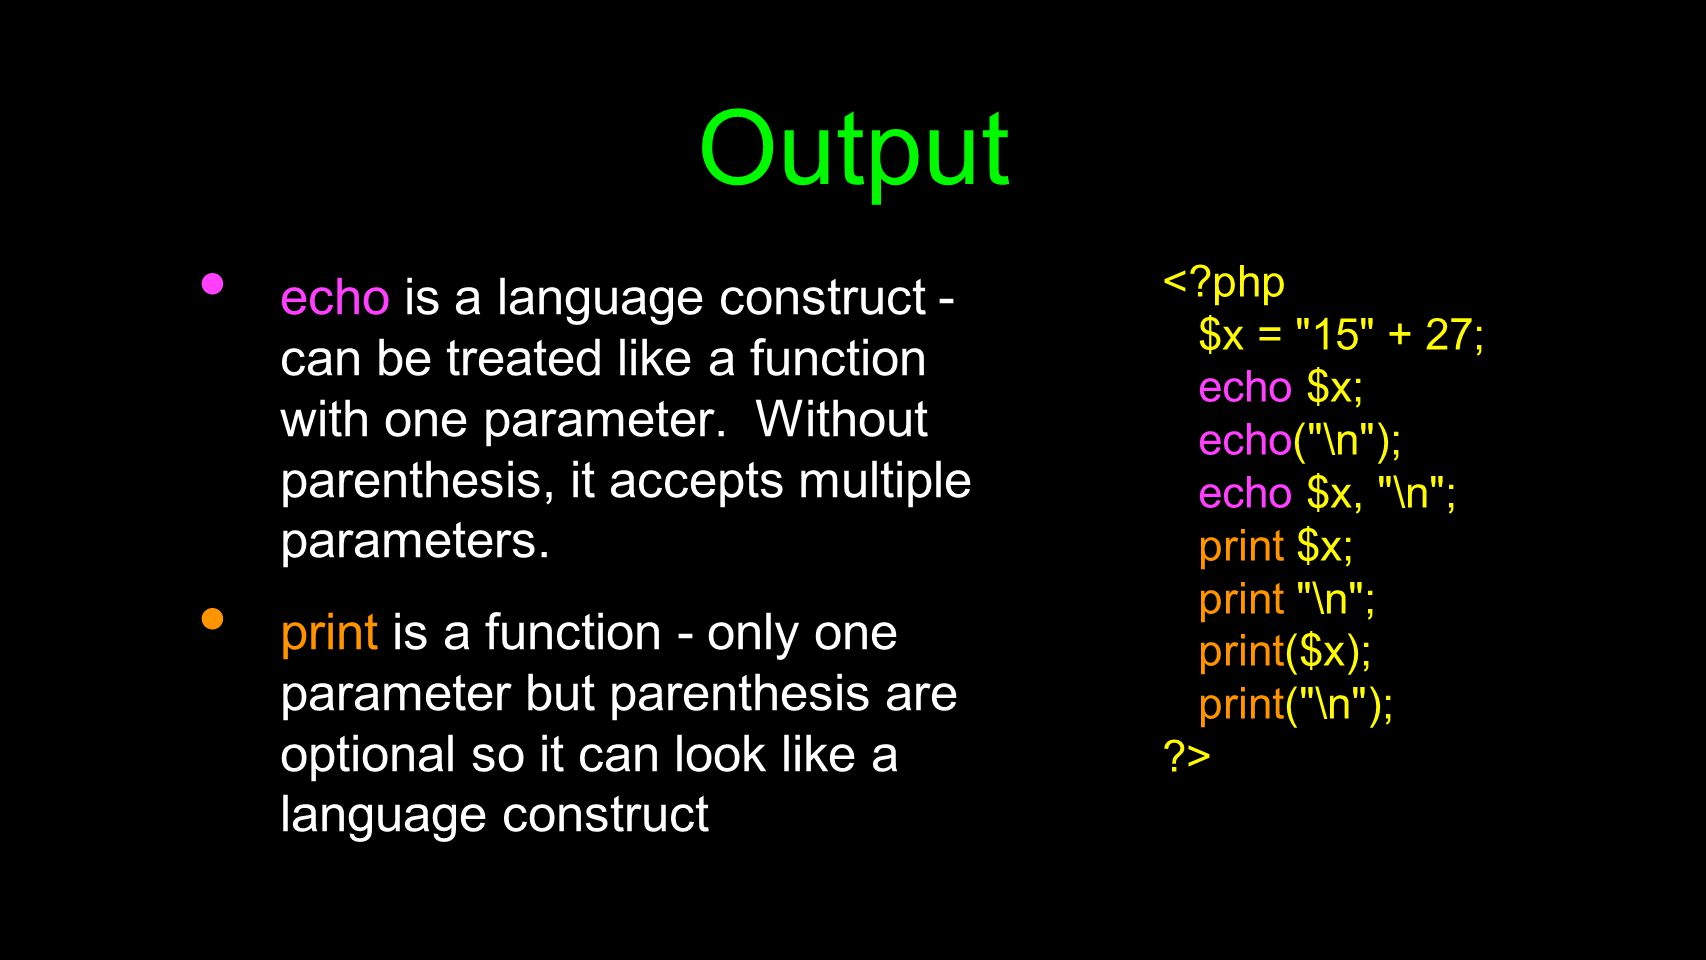 Output echo is a language construct - can be treated like a function with one parameter. Without parenthesis, it accepts multiple parameters. print is